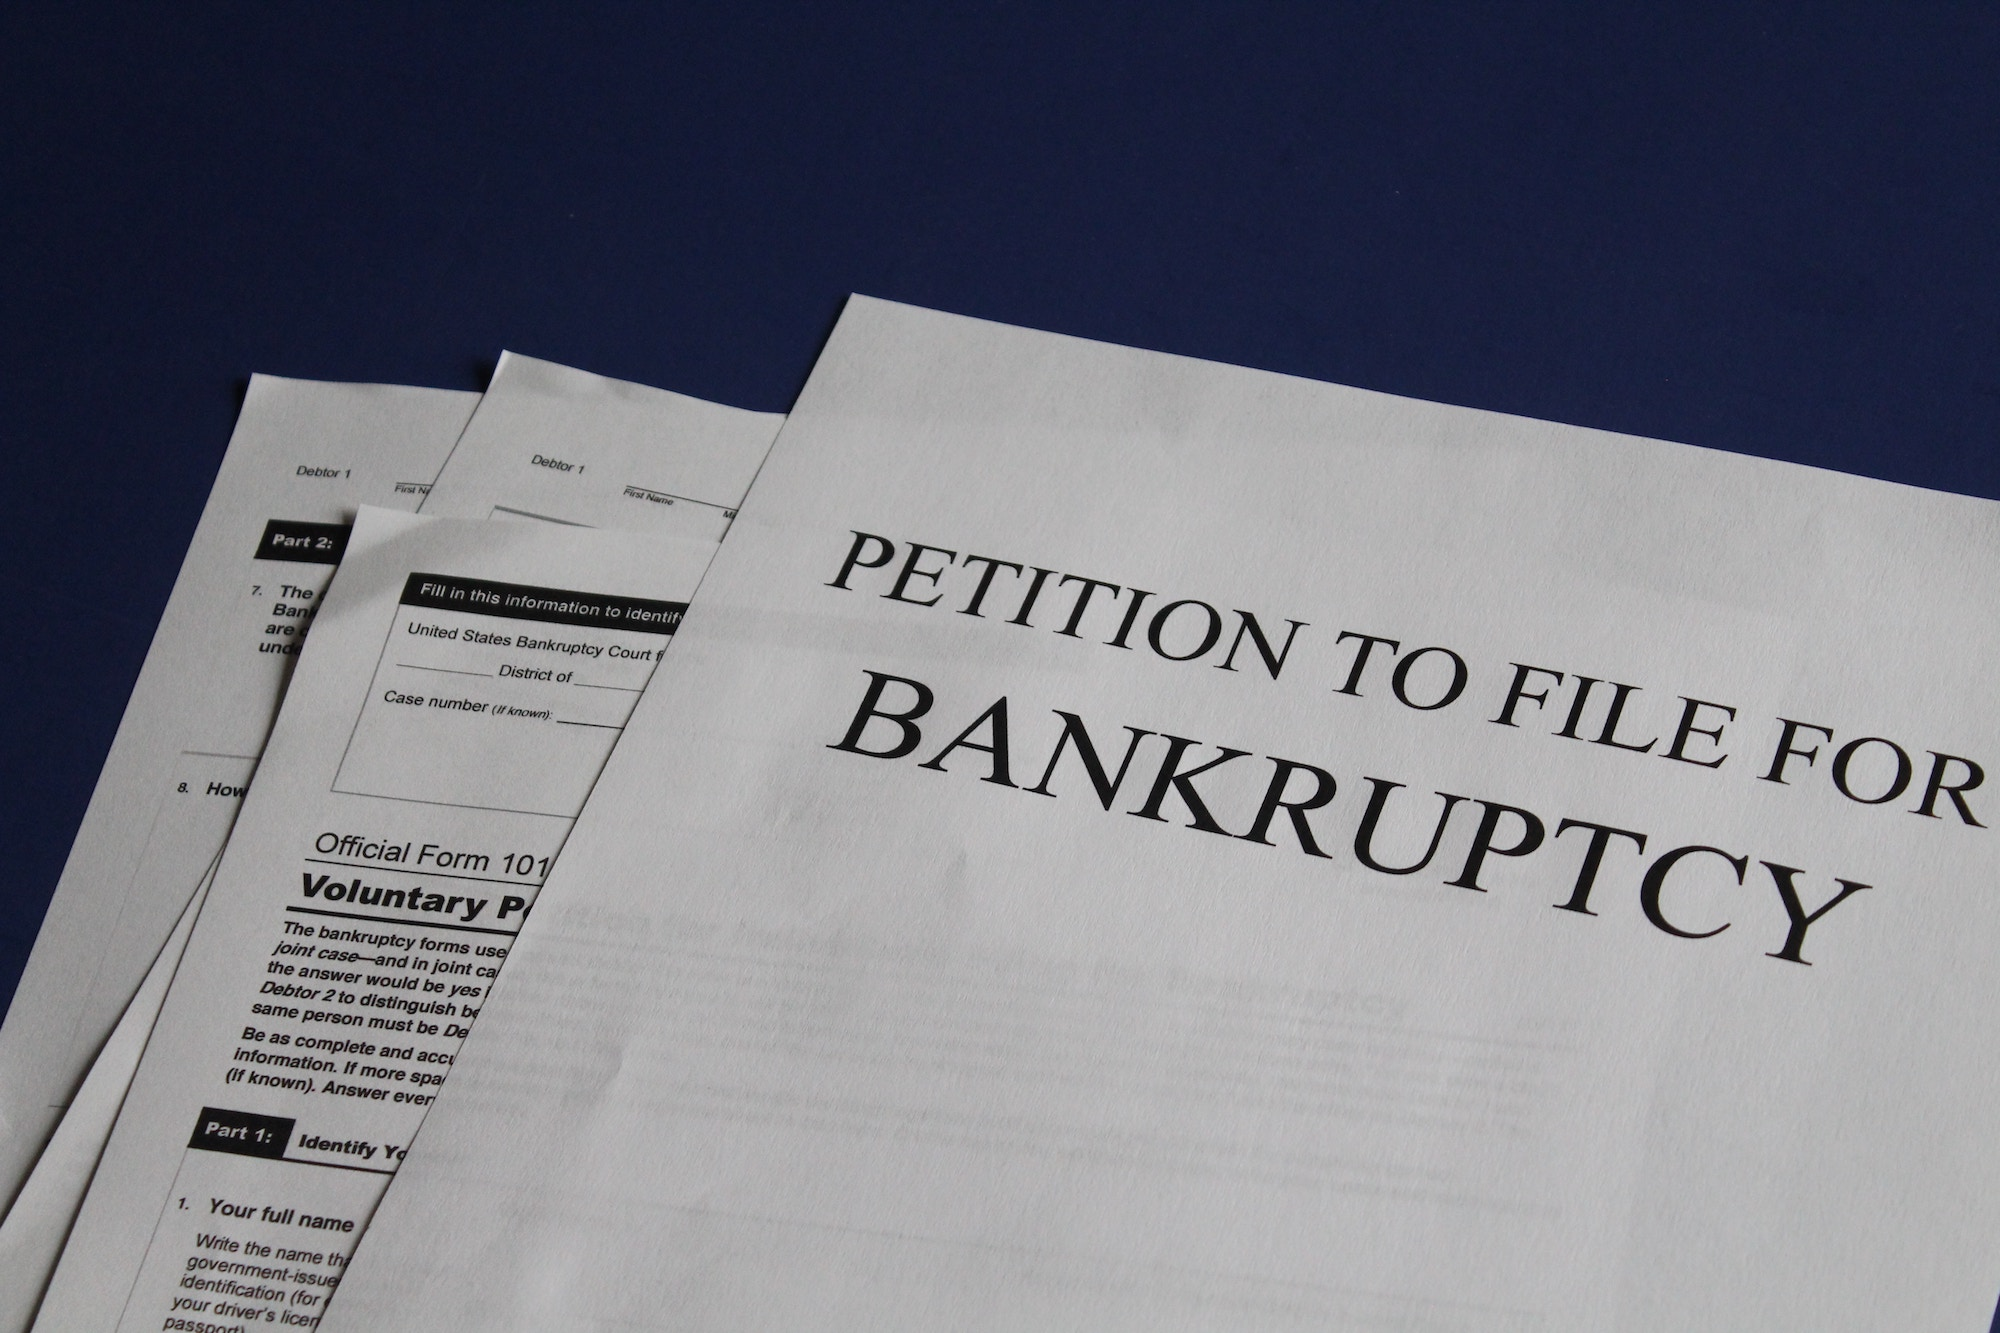 I Just Completed A Chapter 13 Bankruptcy Can I Apply For A Personal Loan Saverlife